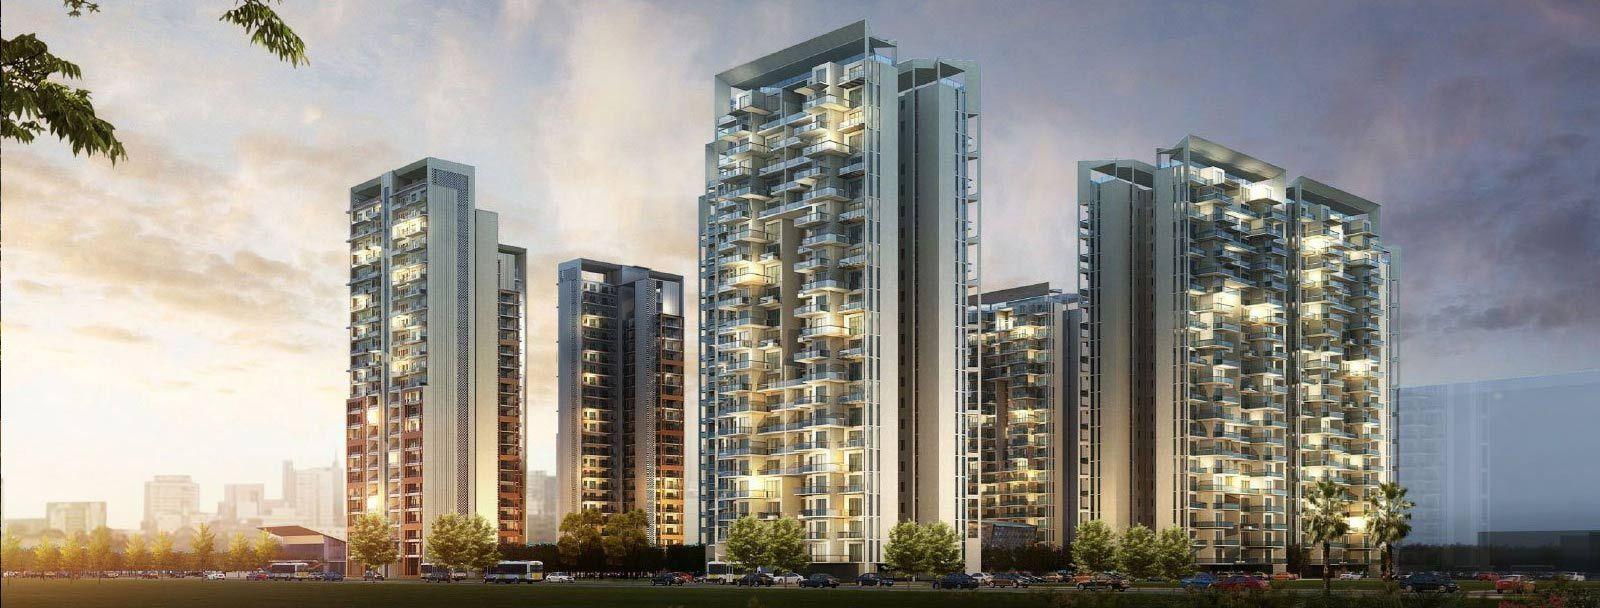 GODREJ NEW PROJECT AT SECTOR 106 GURGAON